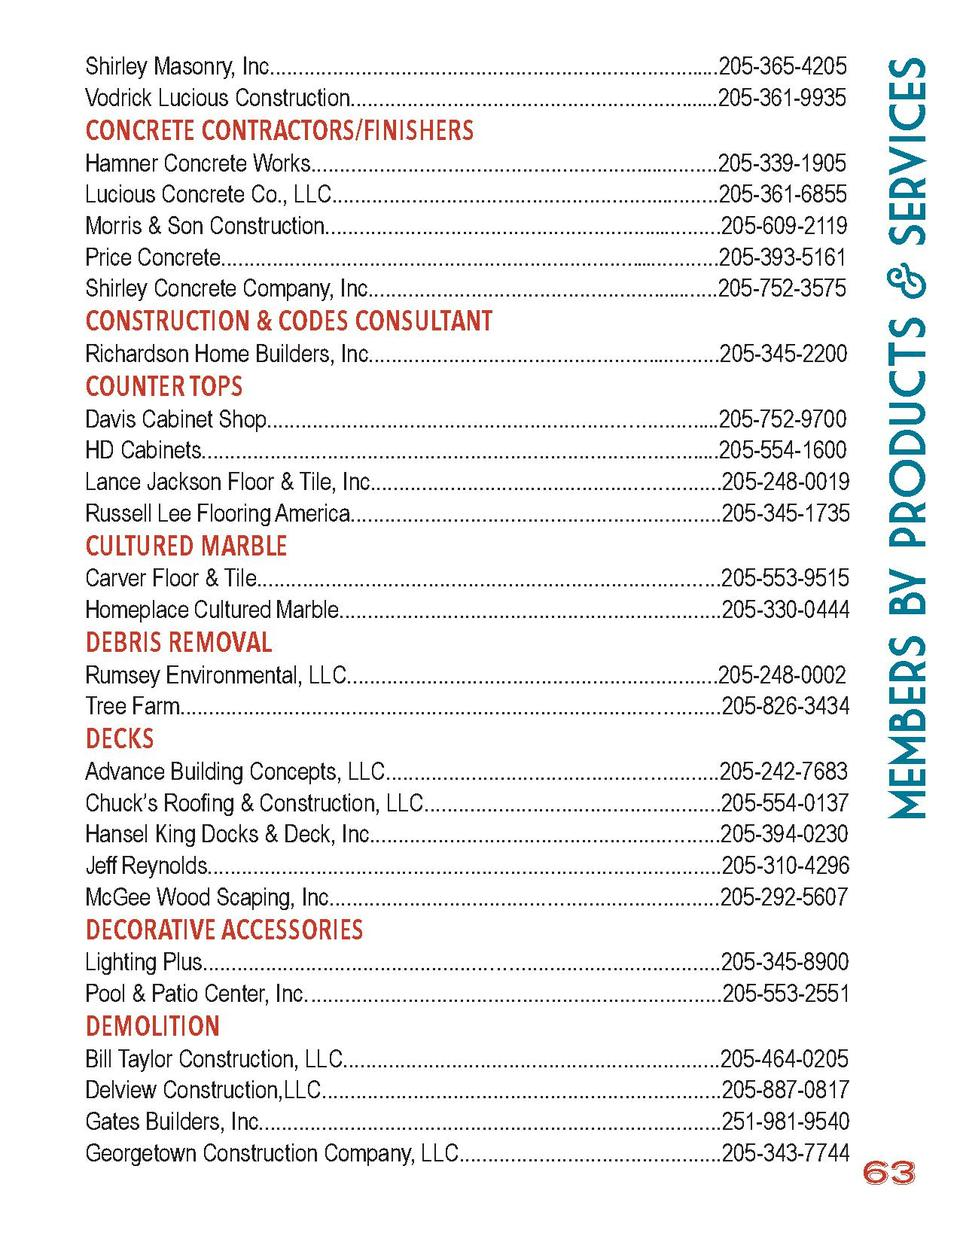 members by Products   Services  Shirley Masonry, Inc.........................................................................